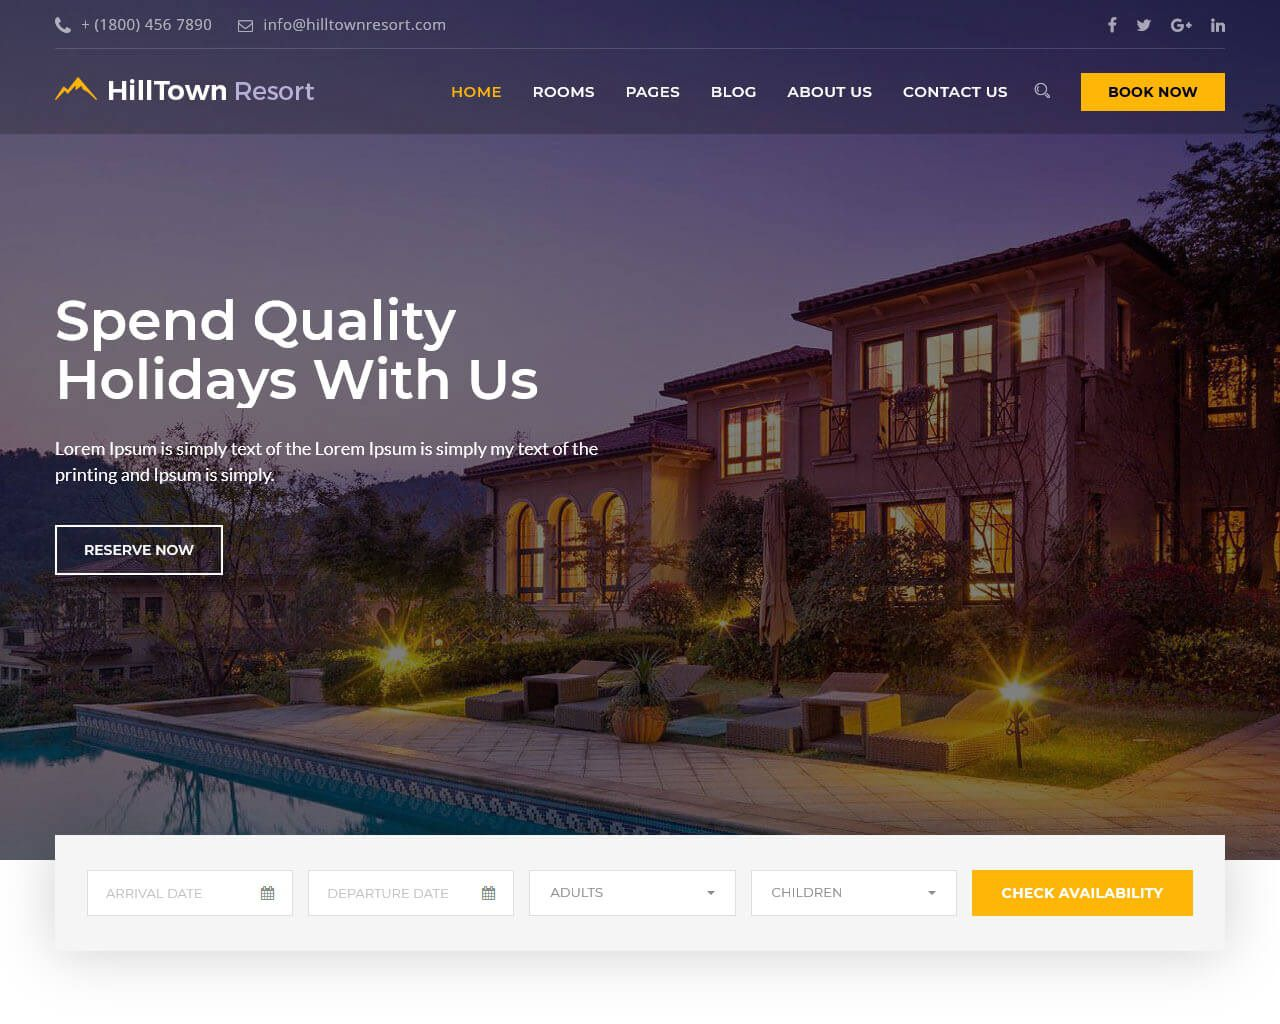 001 Best Hotel Website Template Html Free Download Idea  With Cs Responsive Jquery And RestaurantFull